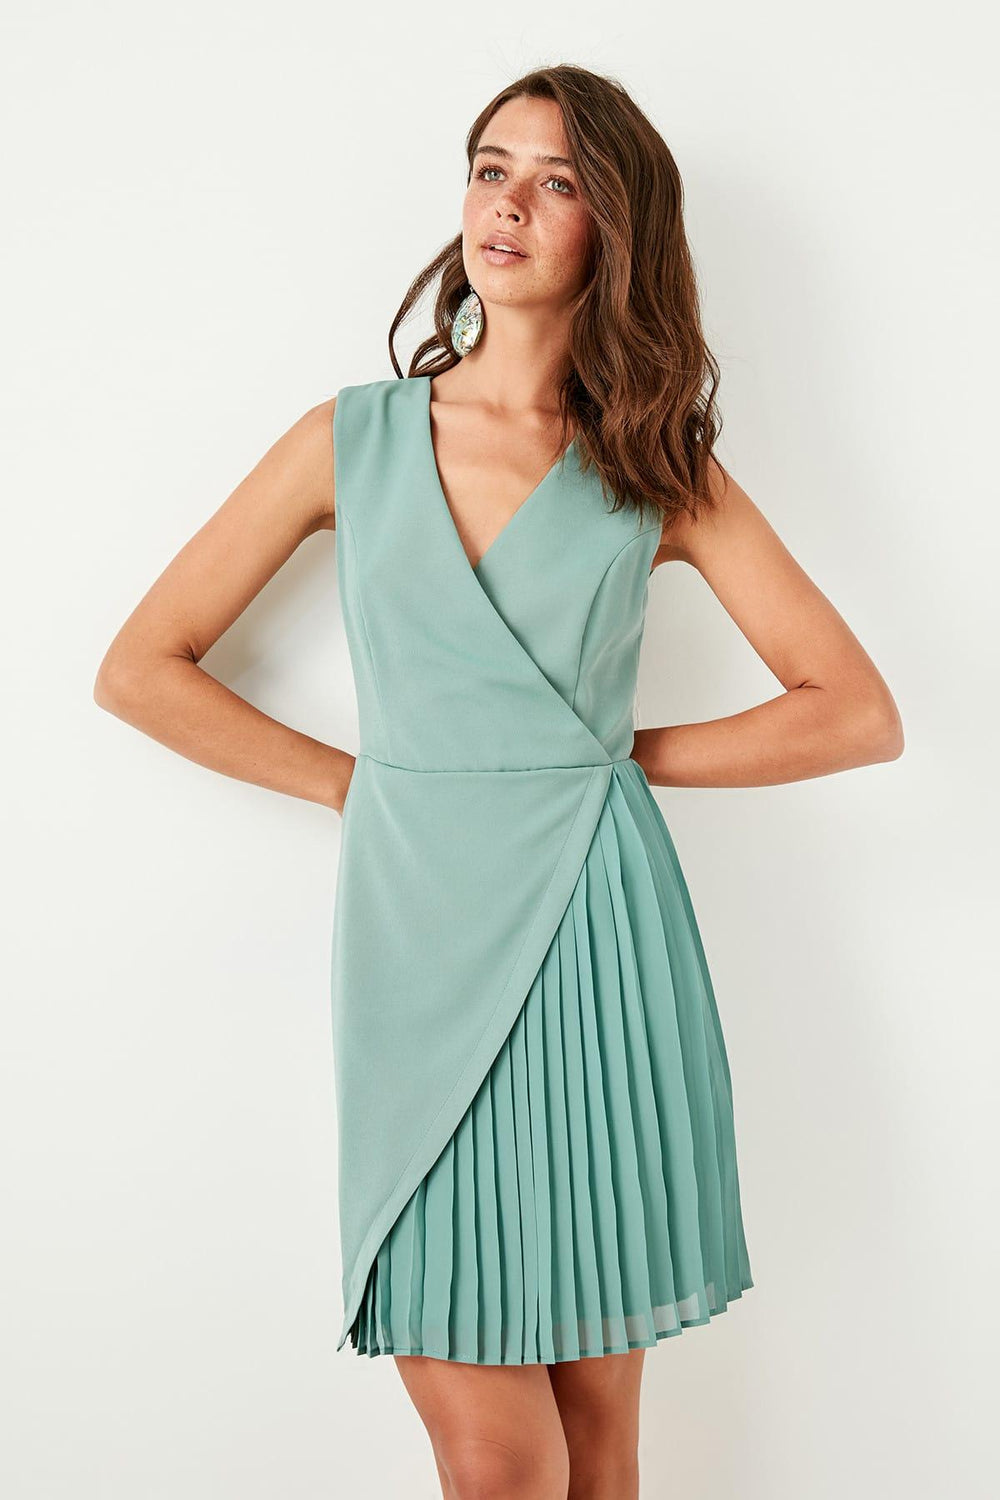 Mint Asymmetrical Dress - Top Maxy